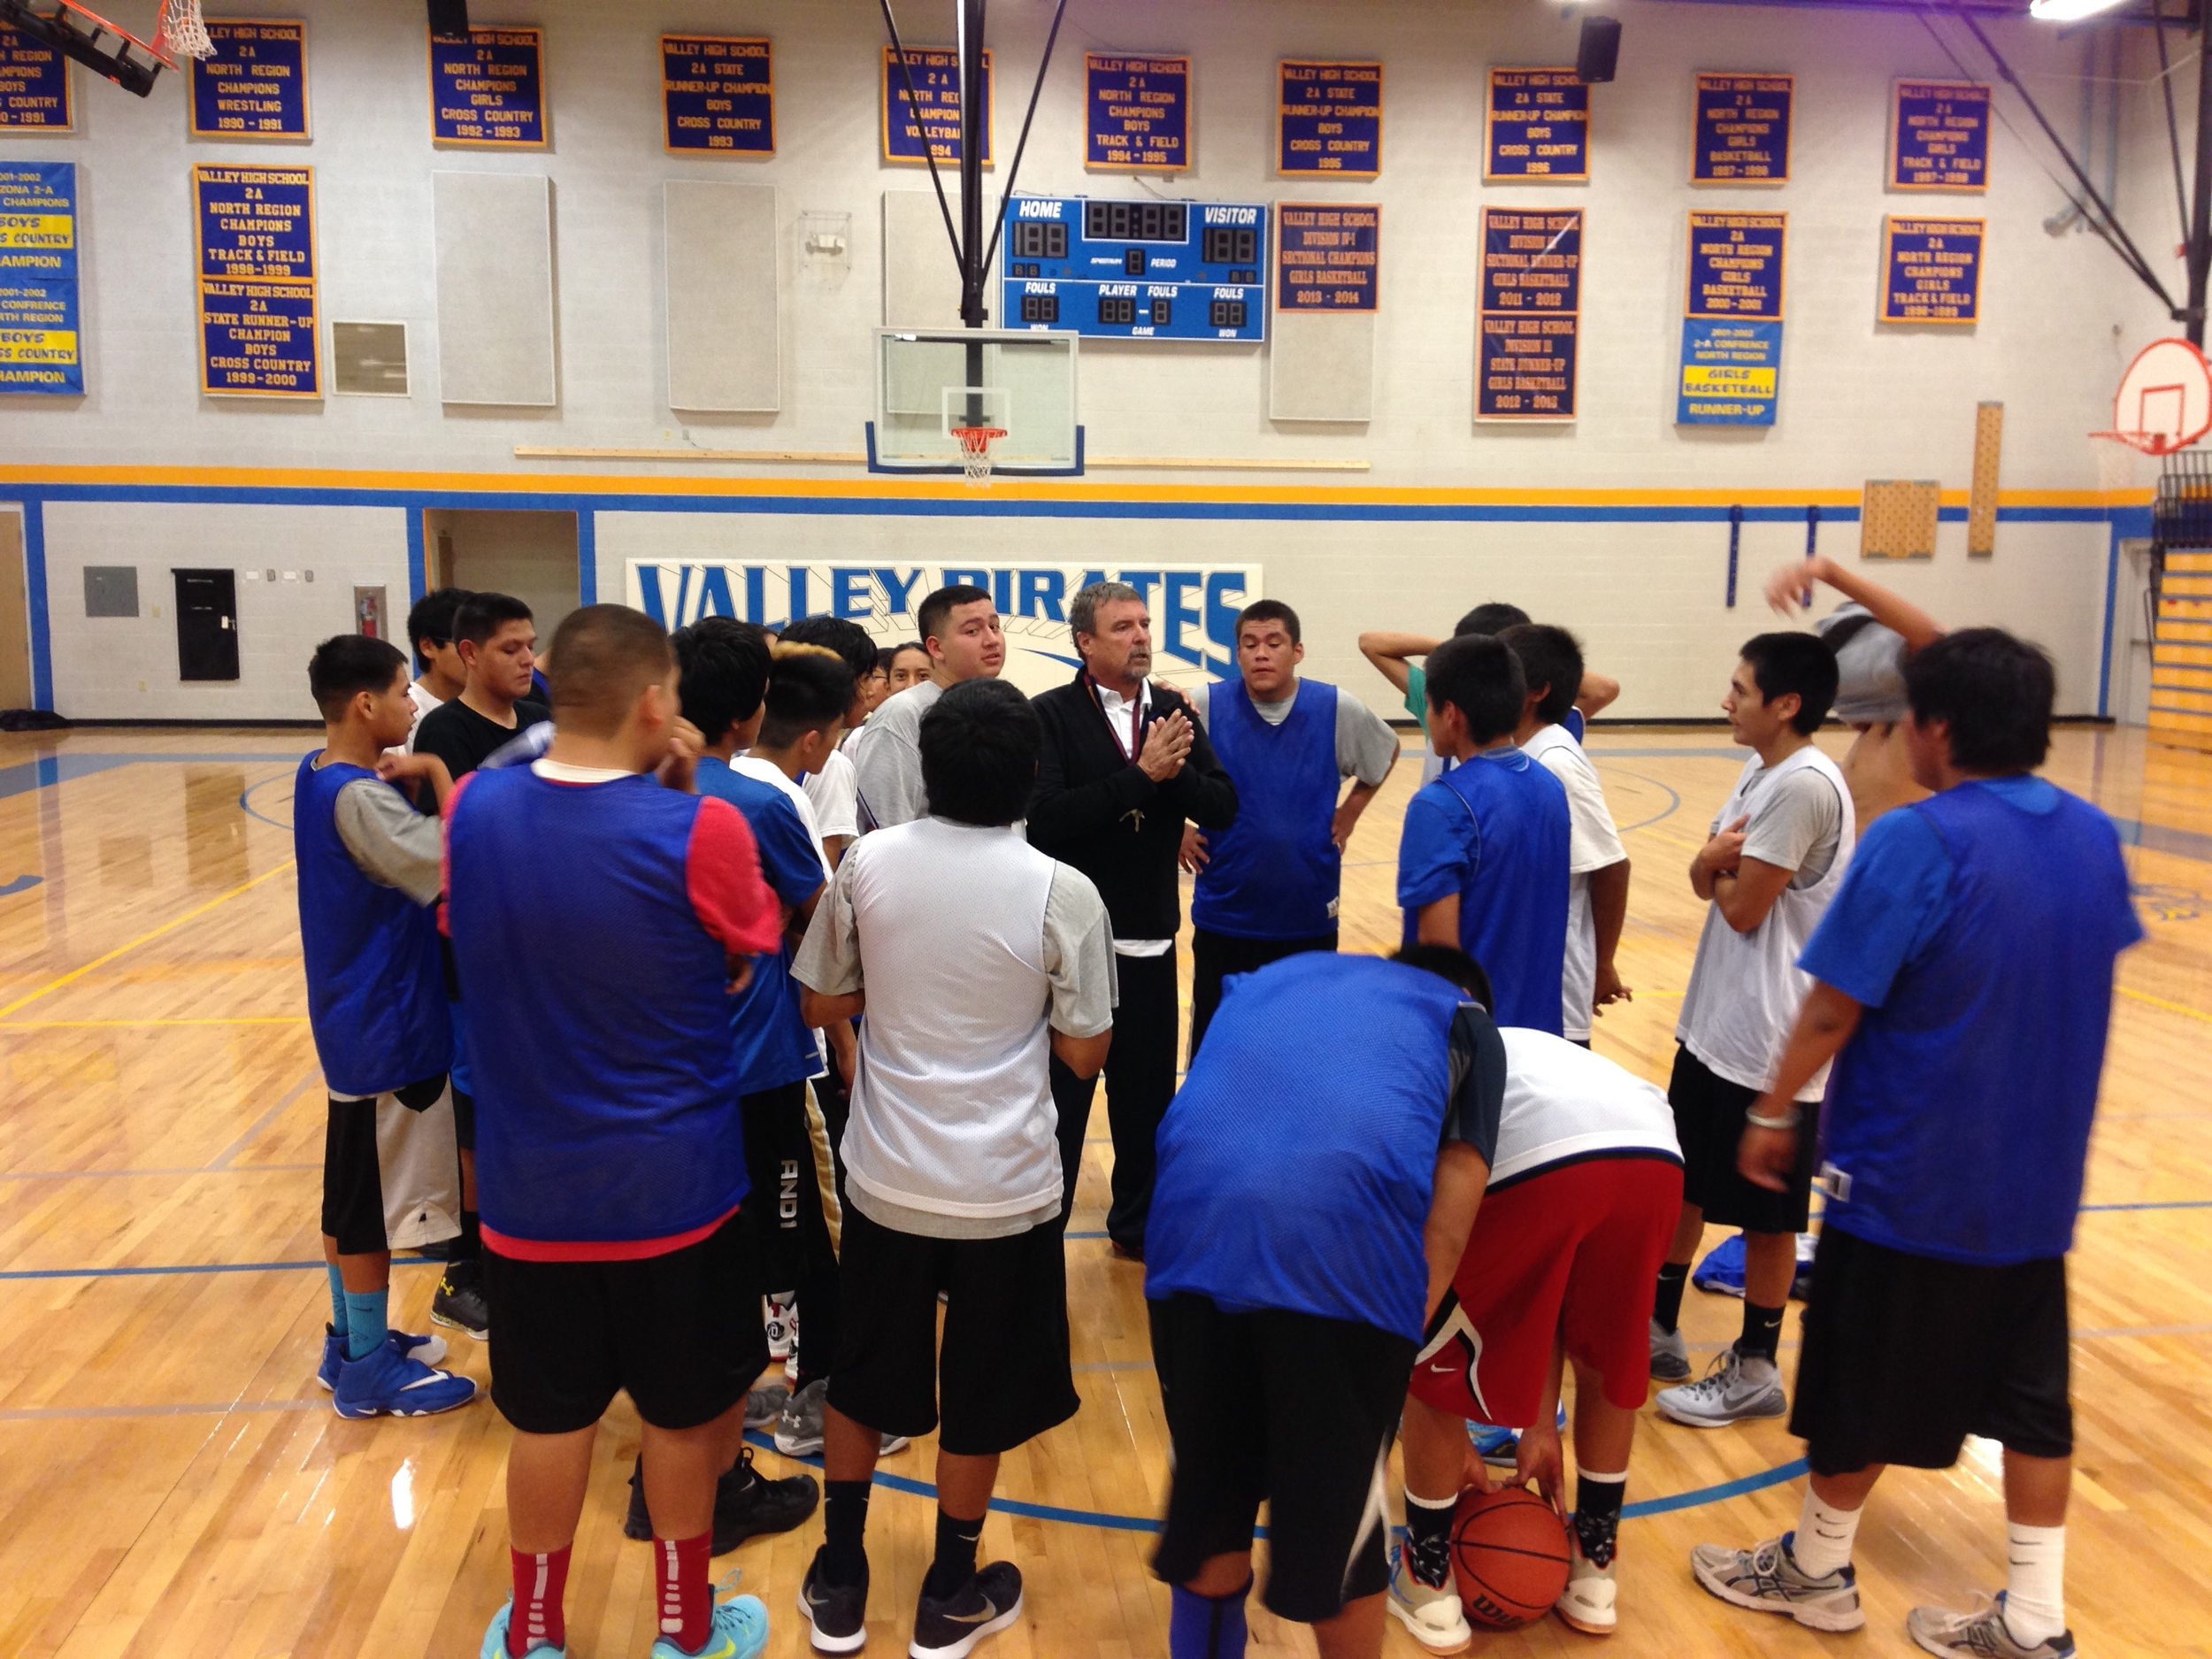 Mark Forster coaching basketball at Valley HS in Sanders, AZ.